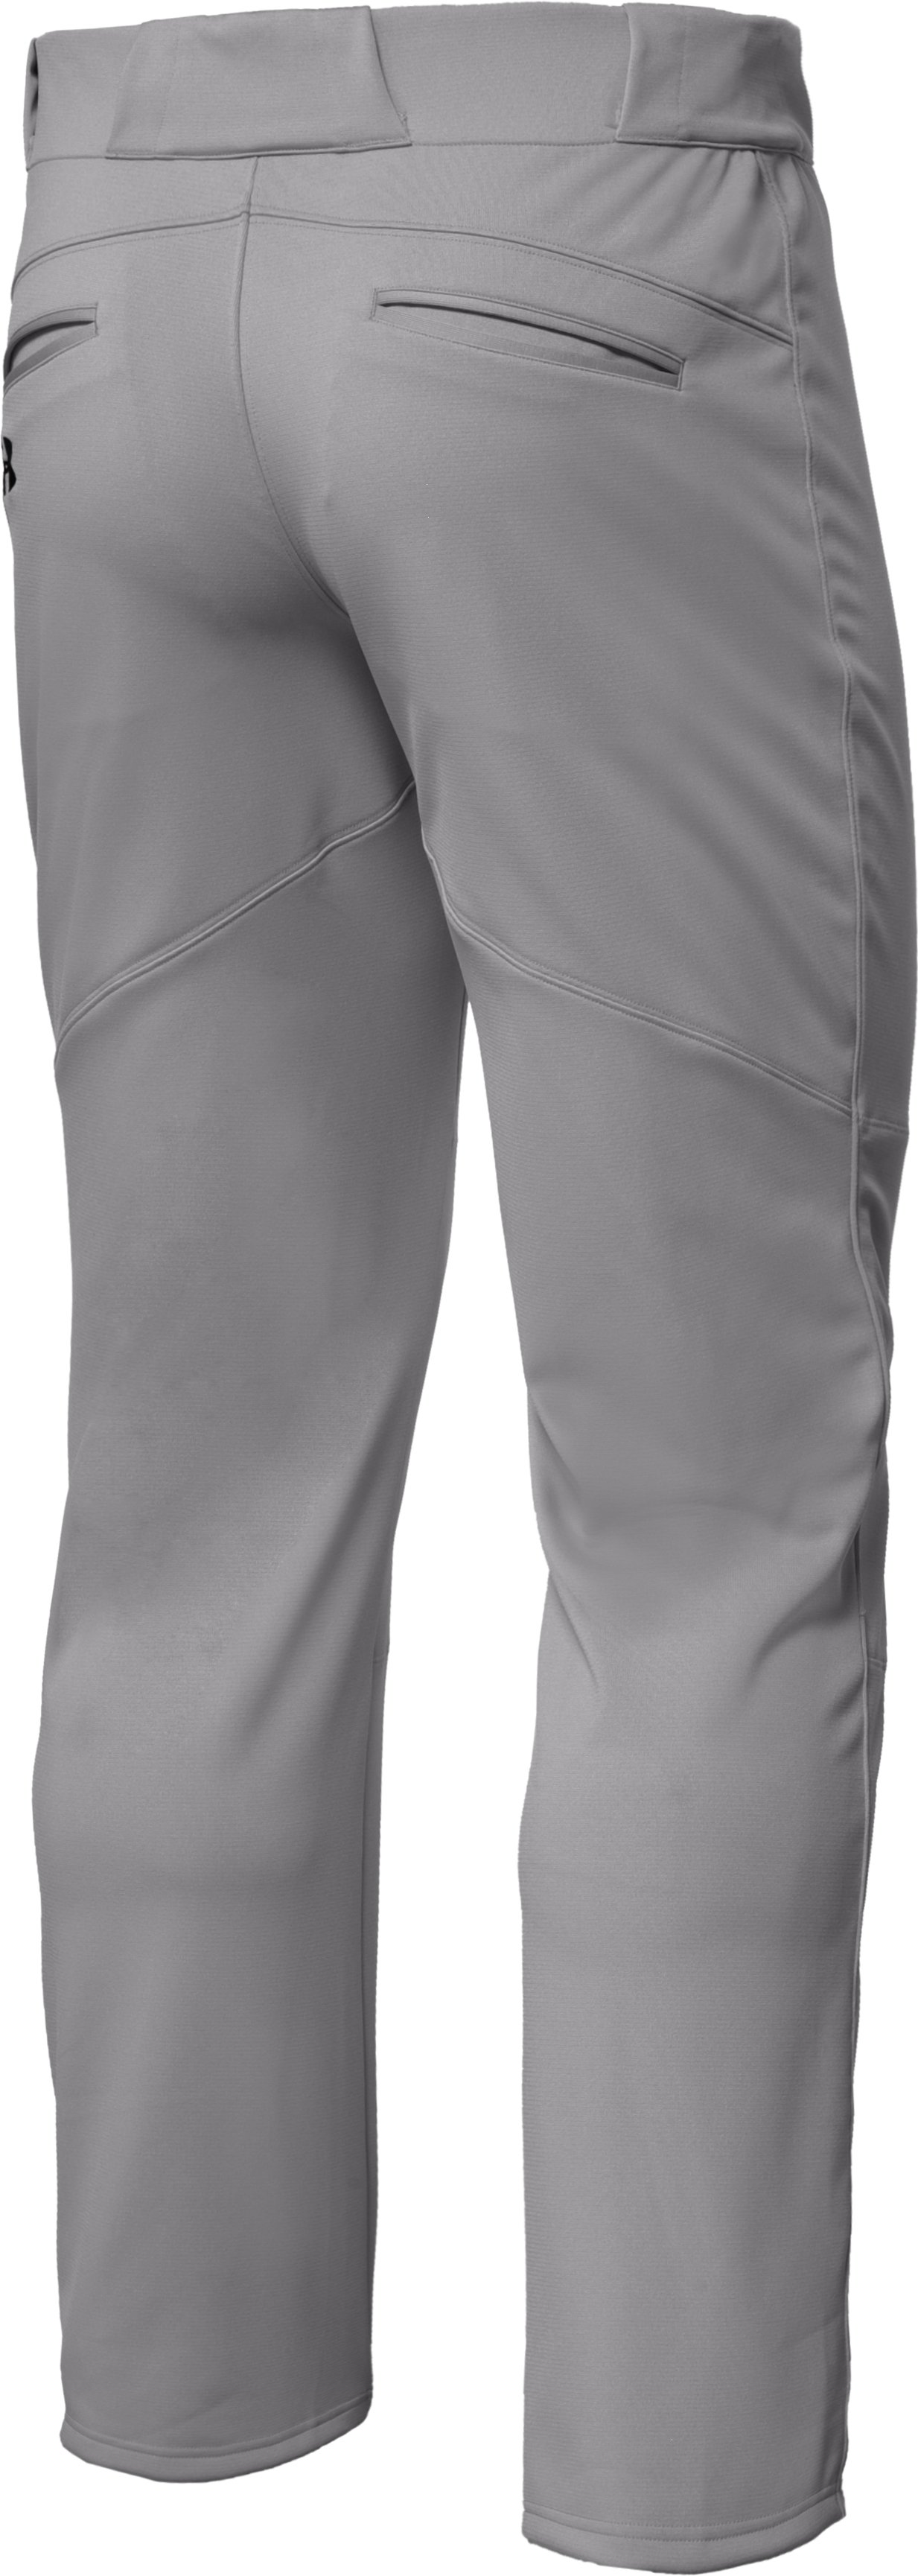 Men's Huntington Pant, Baseball Gray,